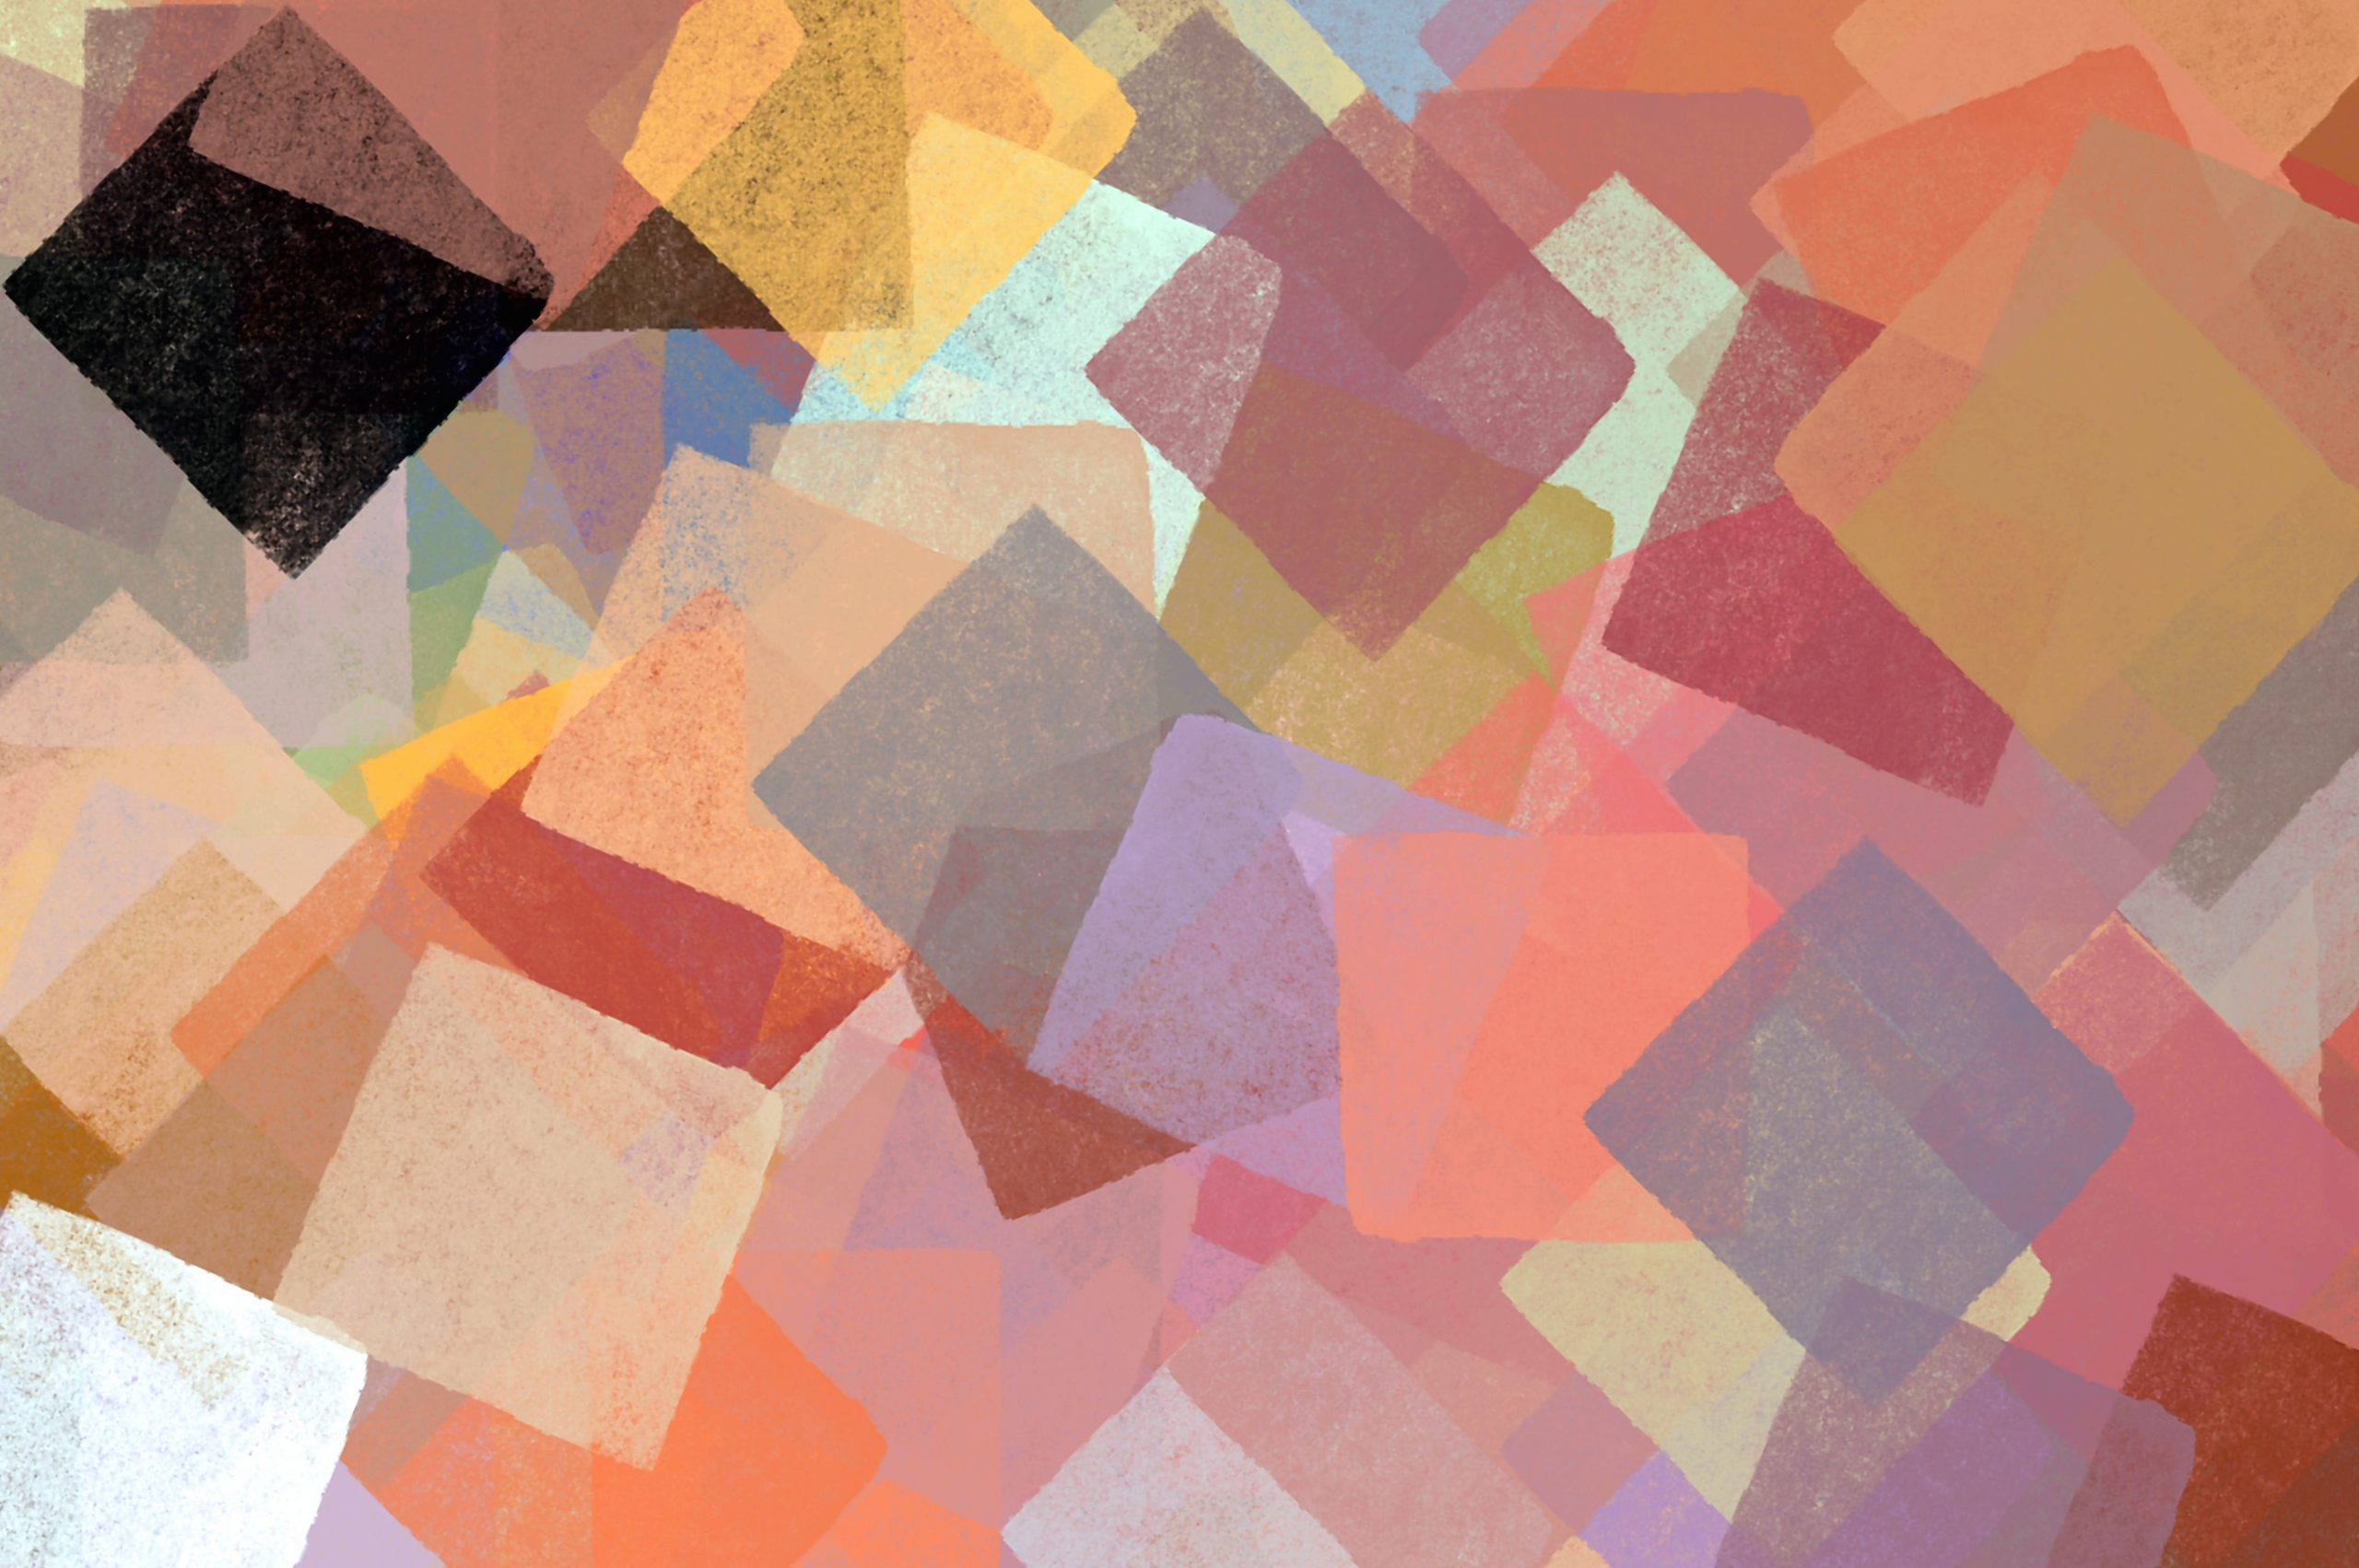 Squares abstract illustration. Brush paint impressionist background pattern.